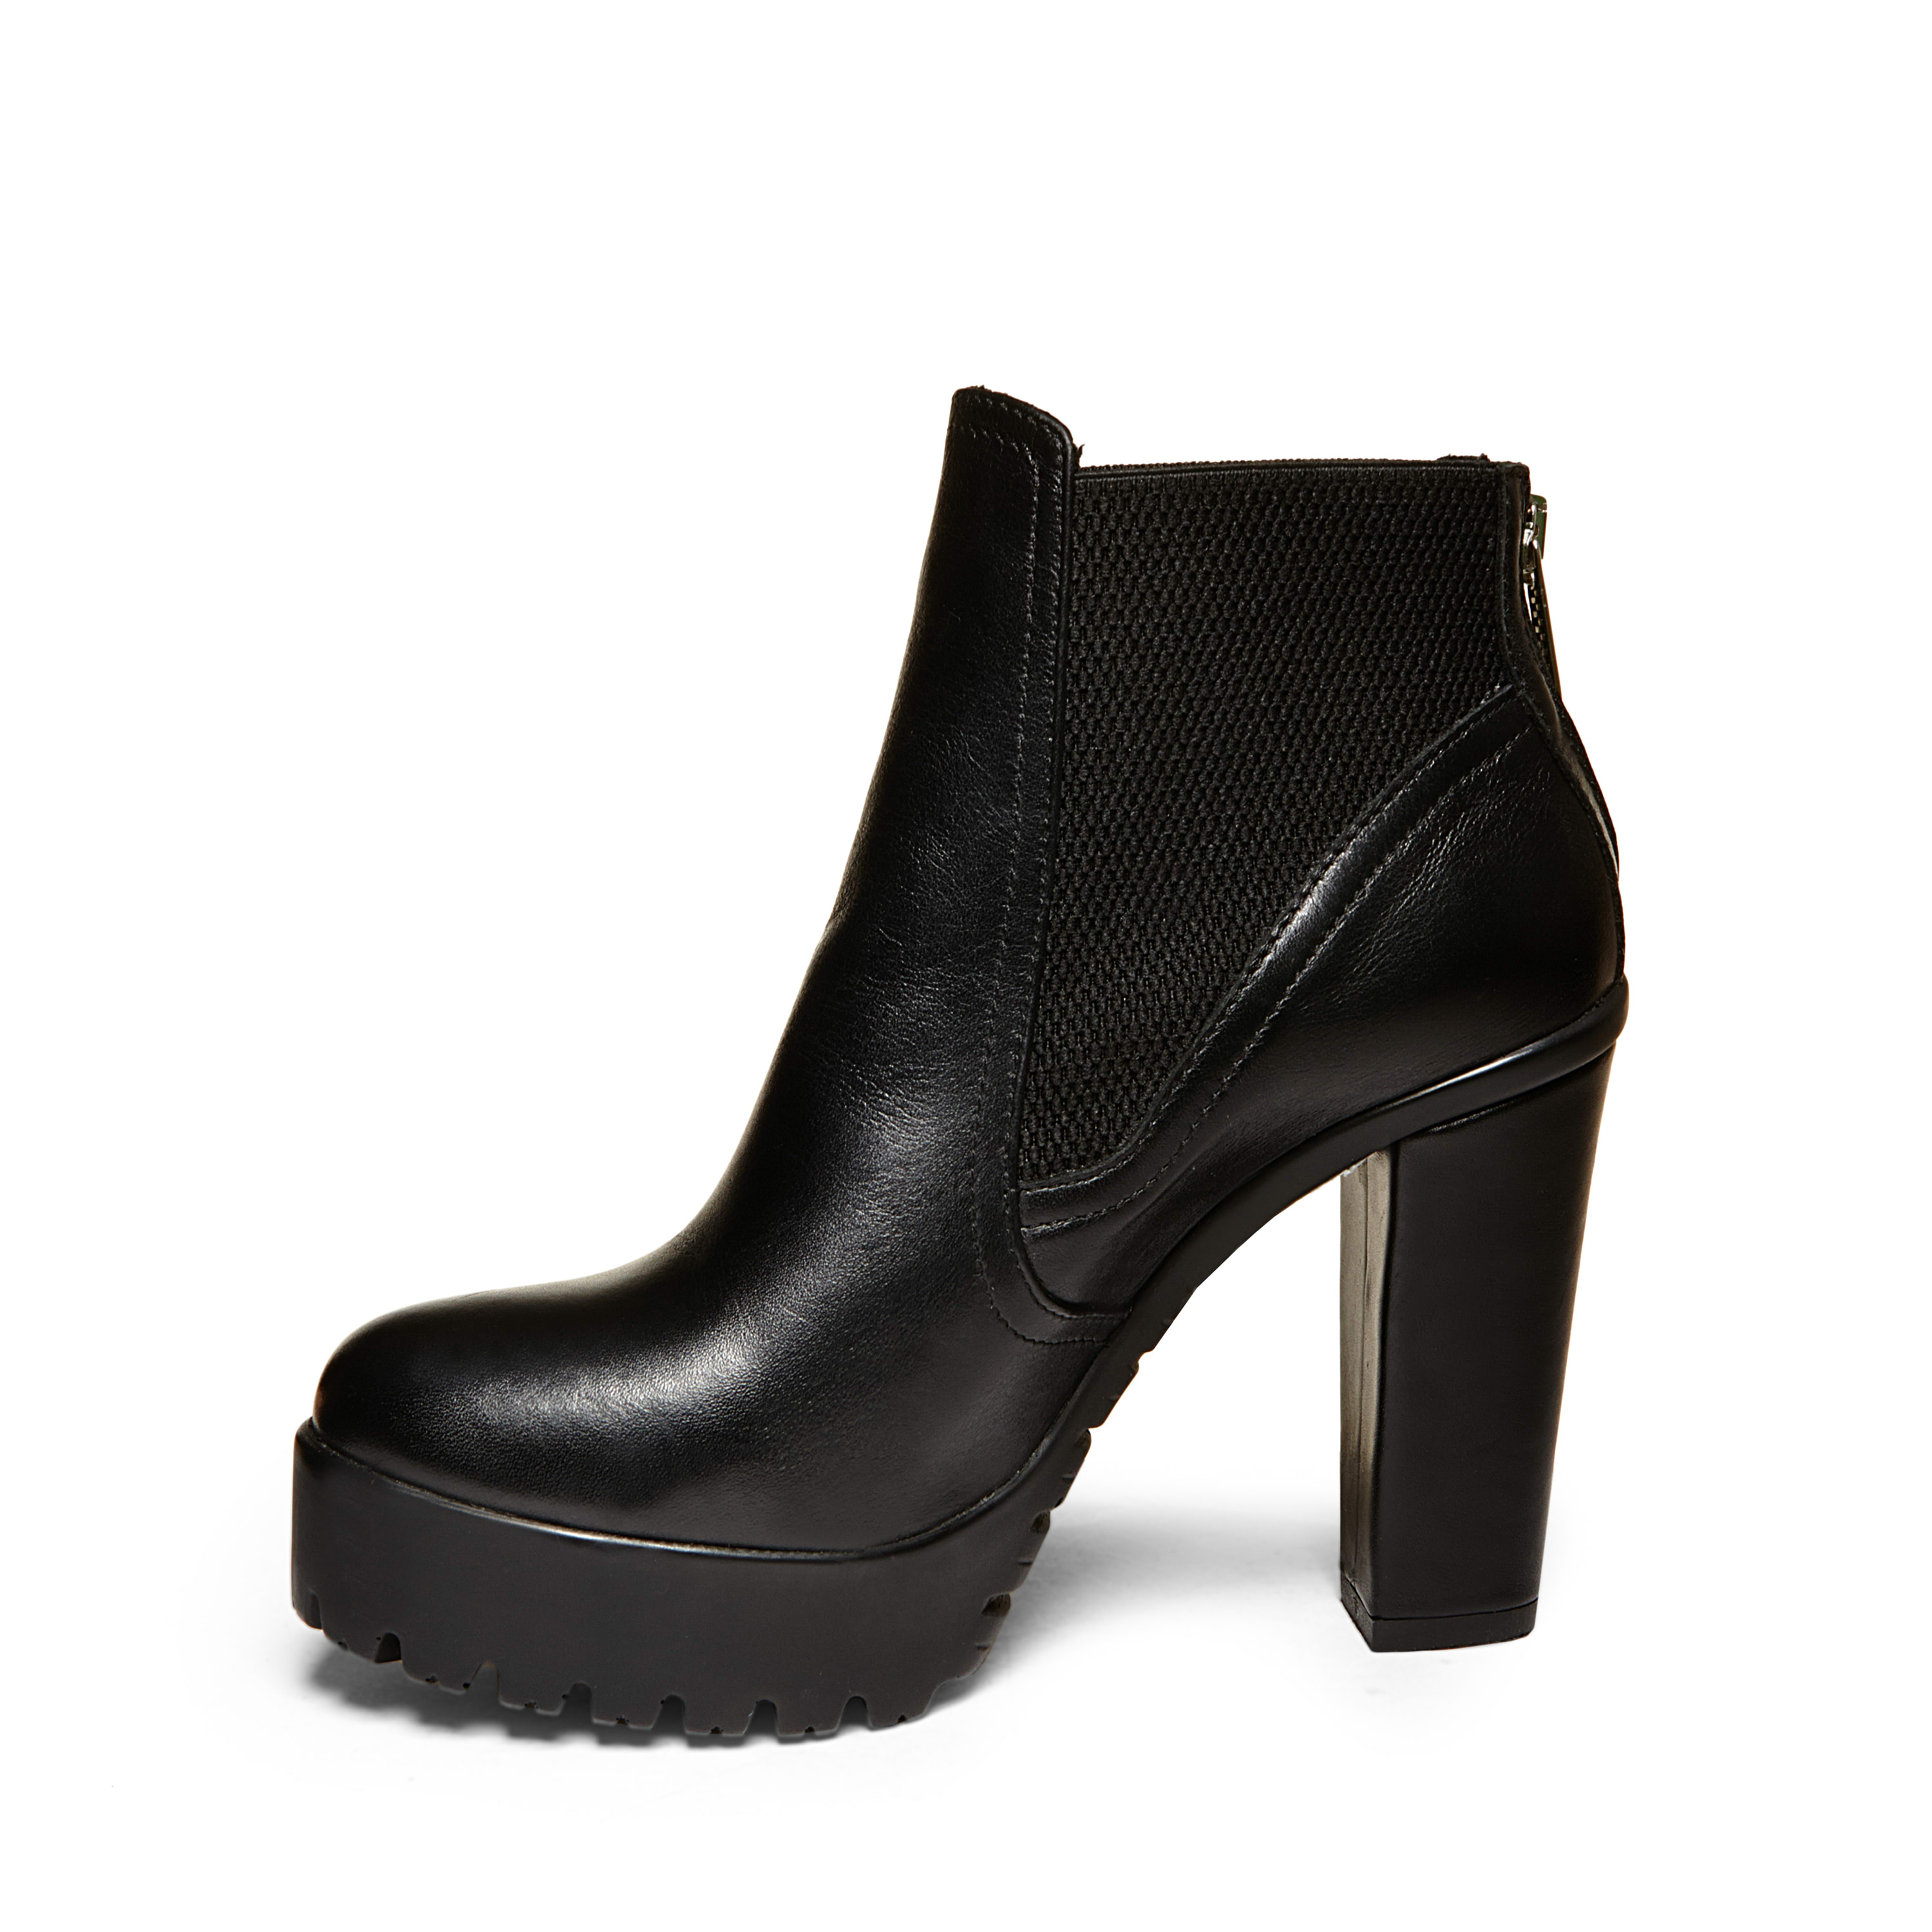 STEVEMADDEN-BOOTIES_AMANDAA_BLACK-LEATHER_INSIDE AED 479